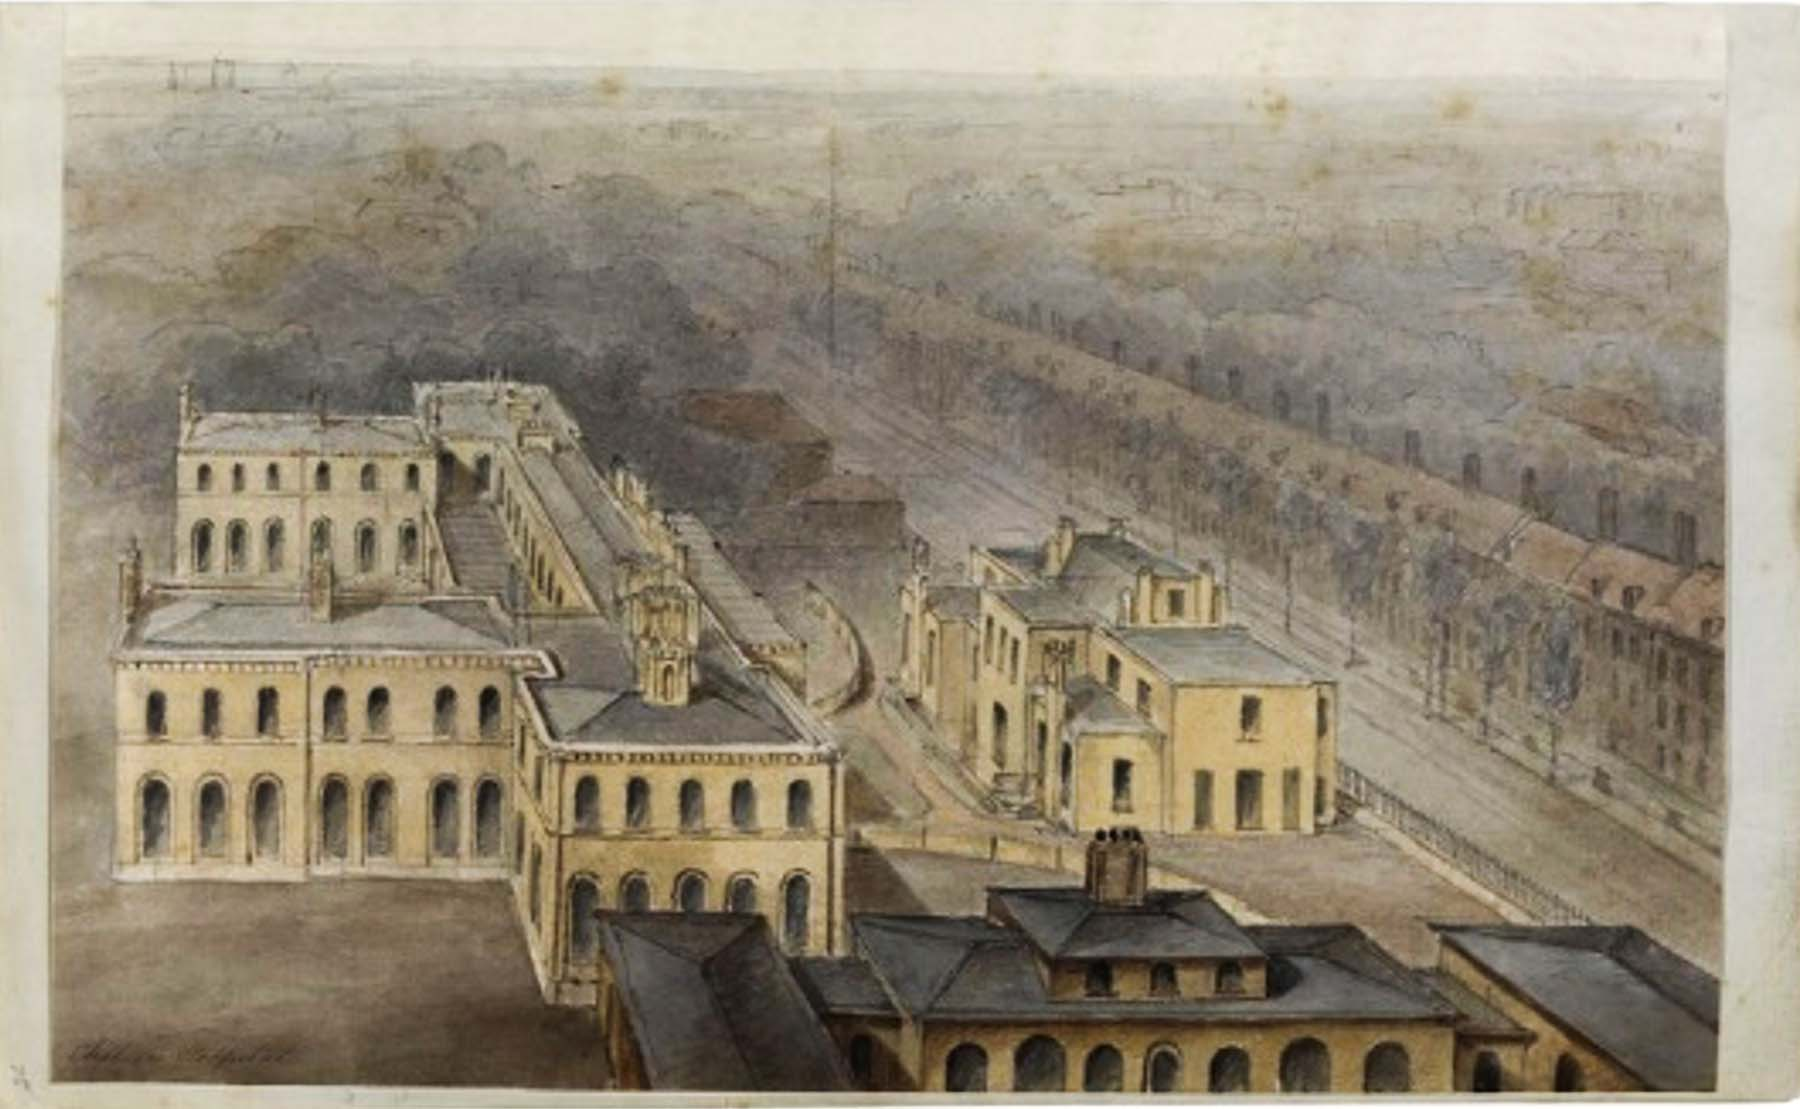 The Infirmary dominated the Royal Hospital Road